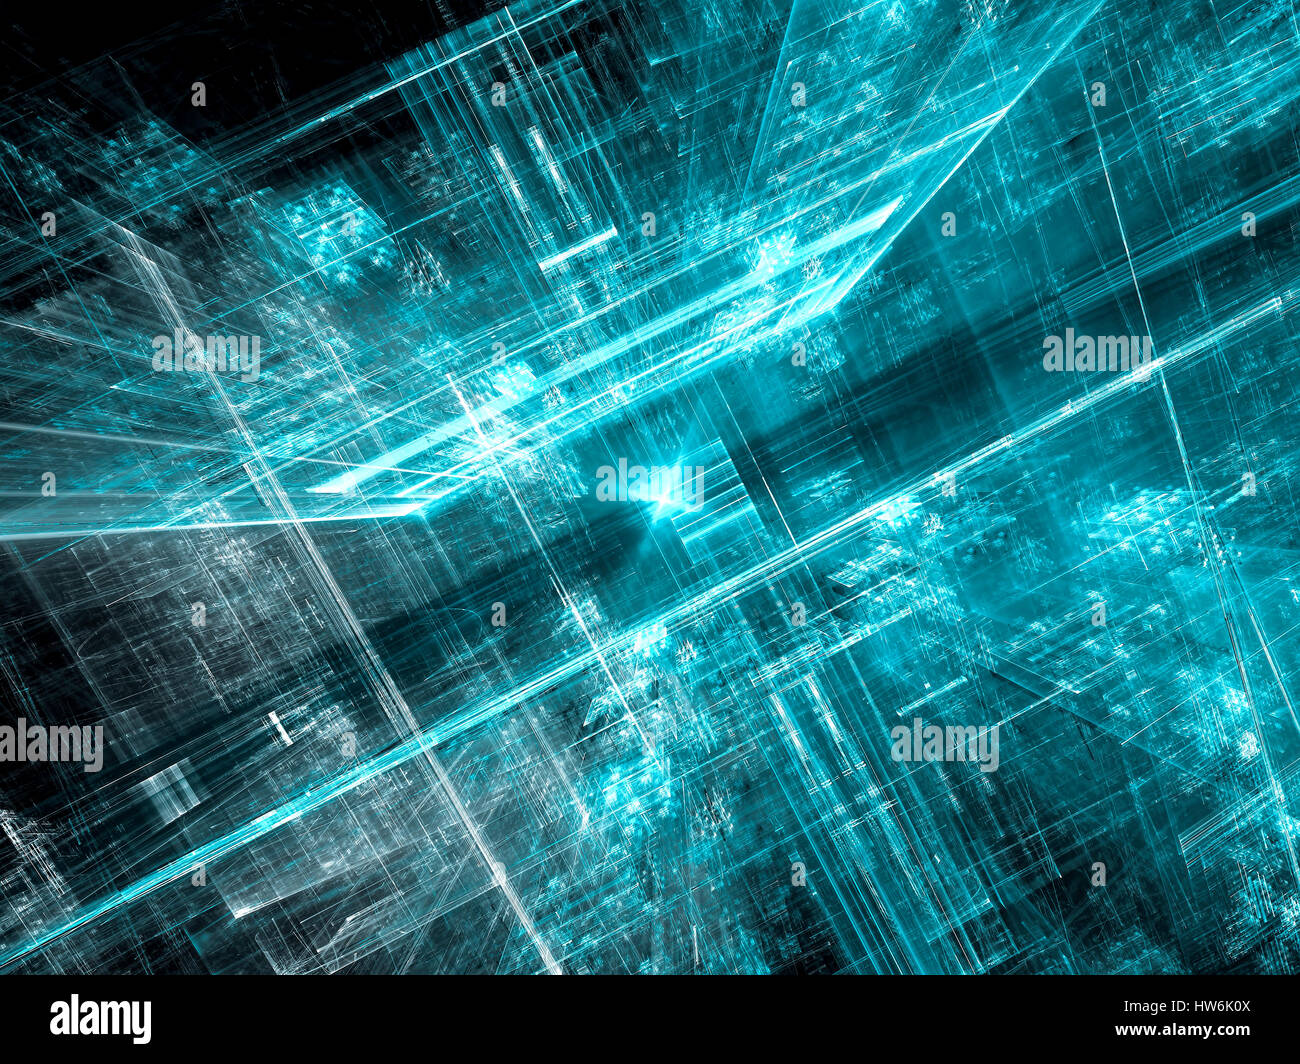 Future city - abstract digitally generated image - Stock Image